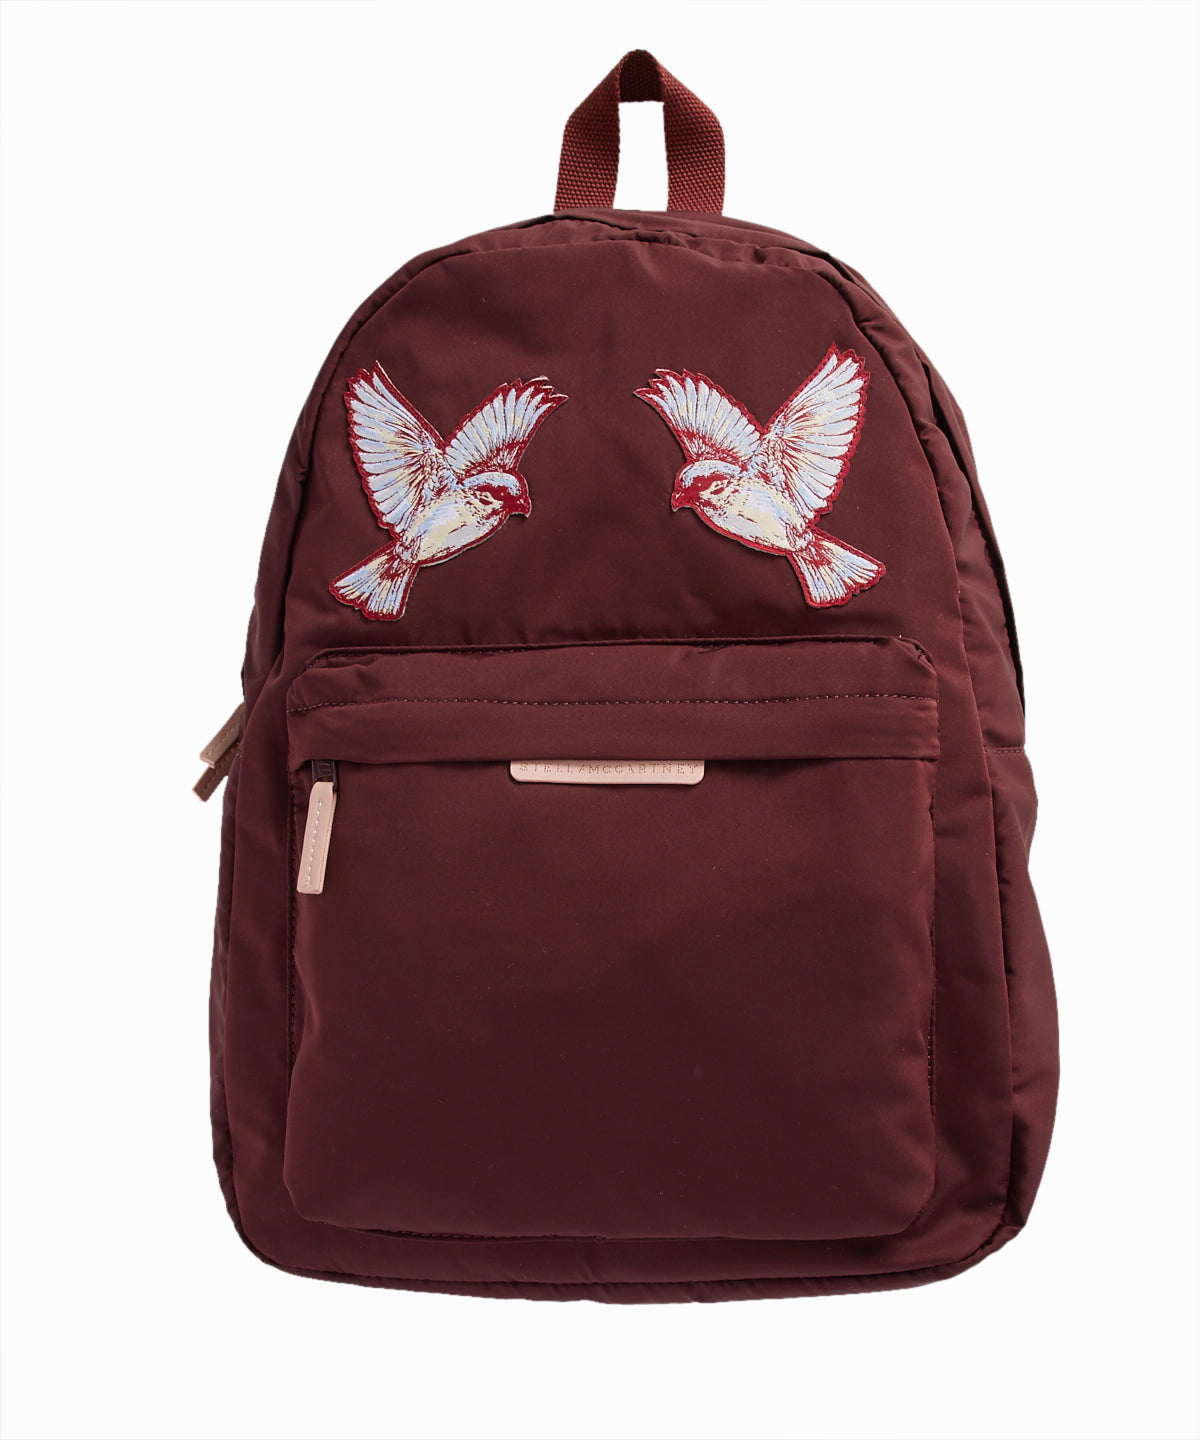 Hummingbird Patch Bordeaux Backpack